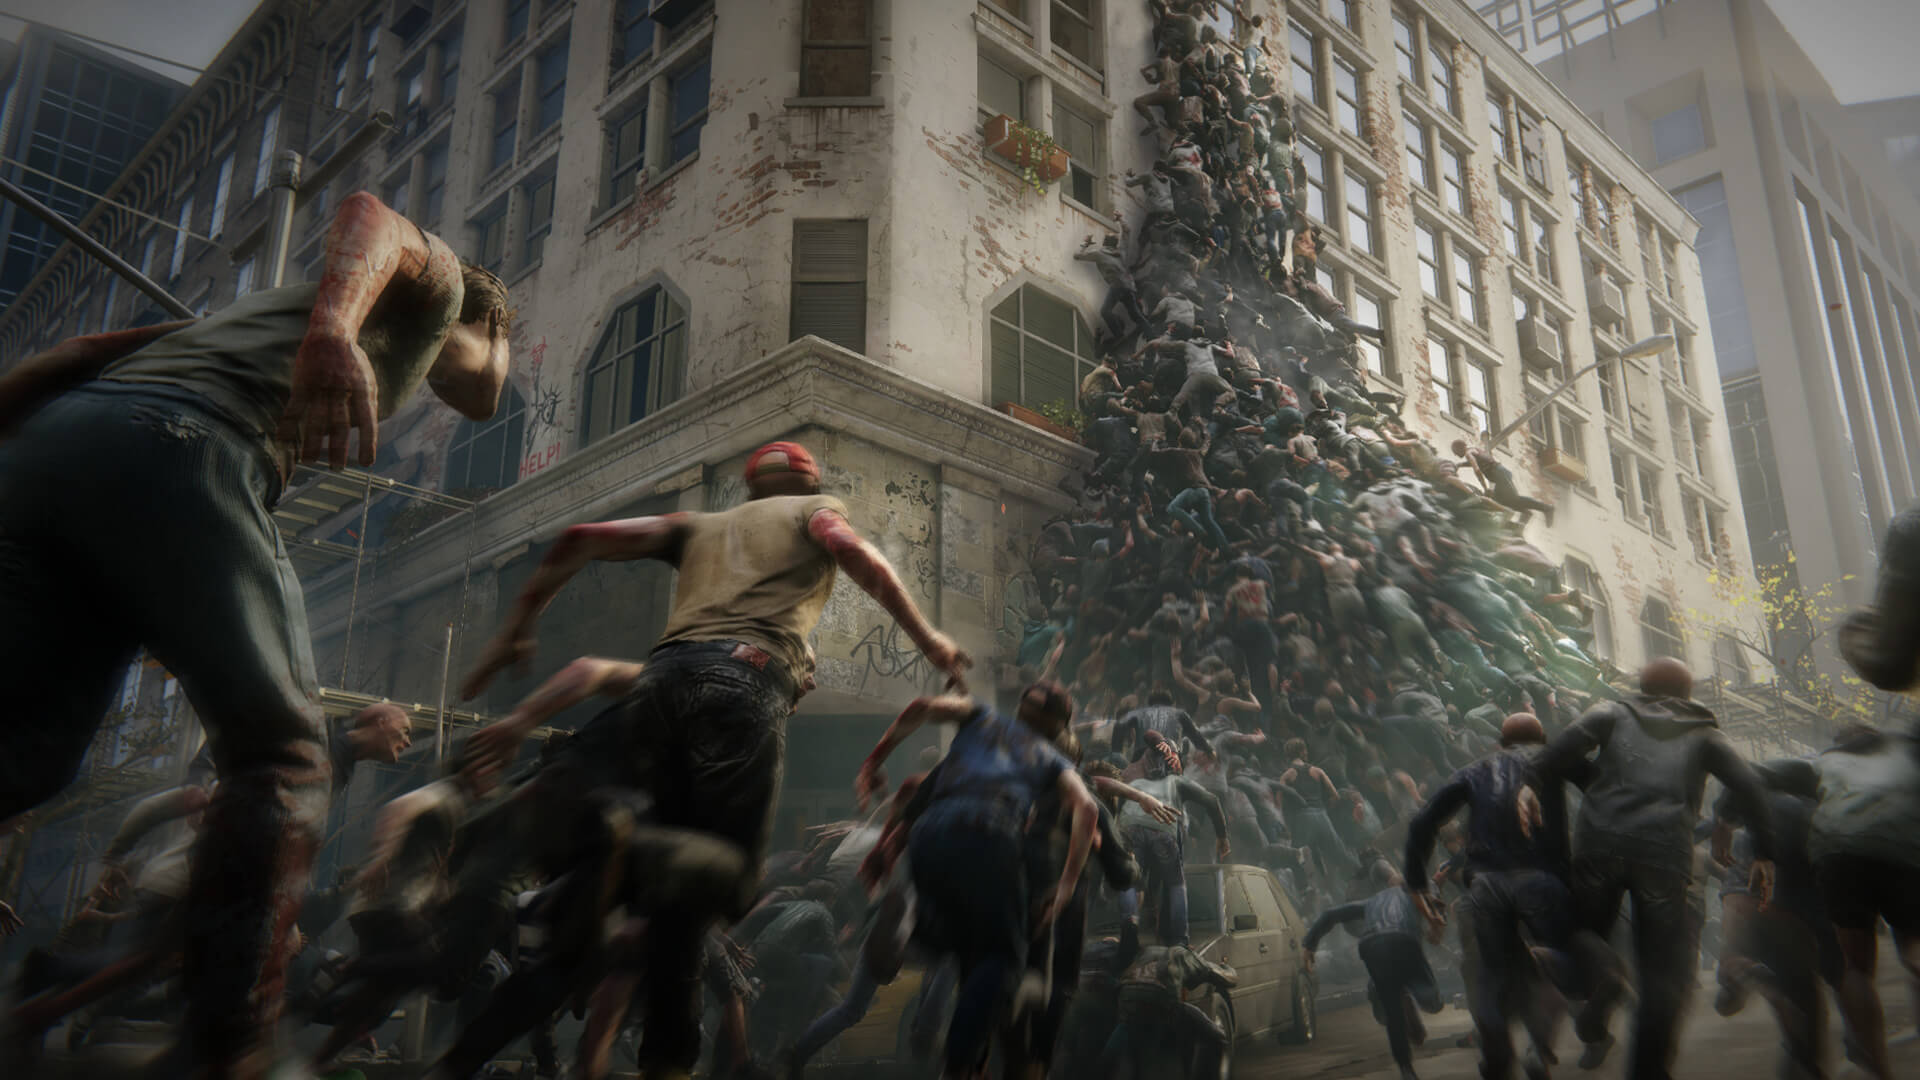 World War Z Six Skulls free update is now available for download